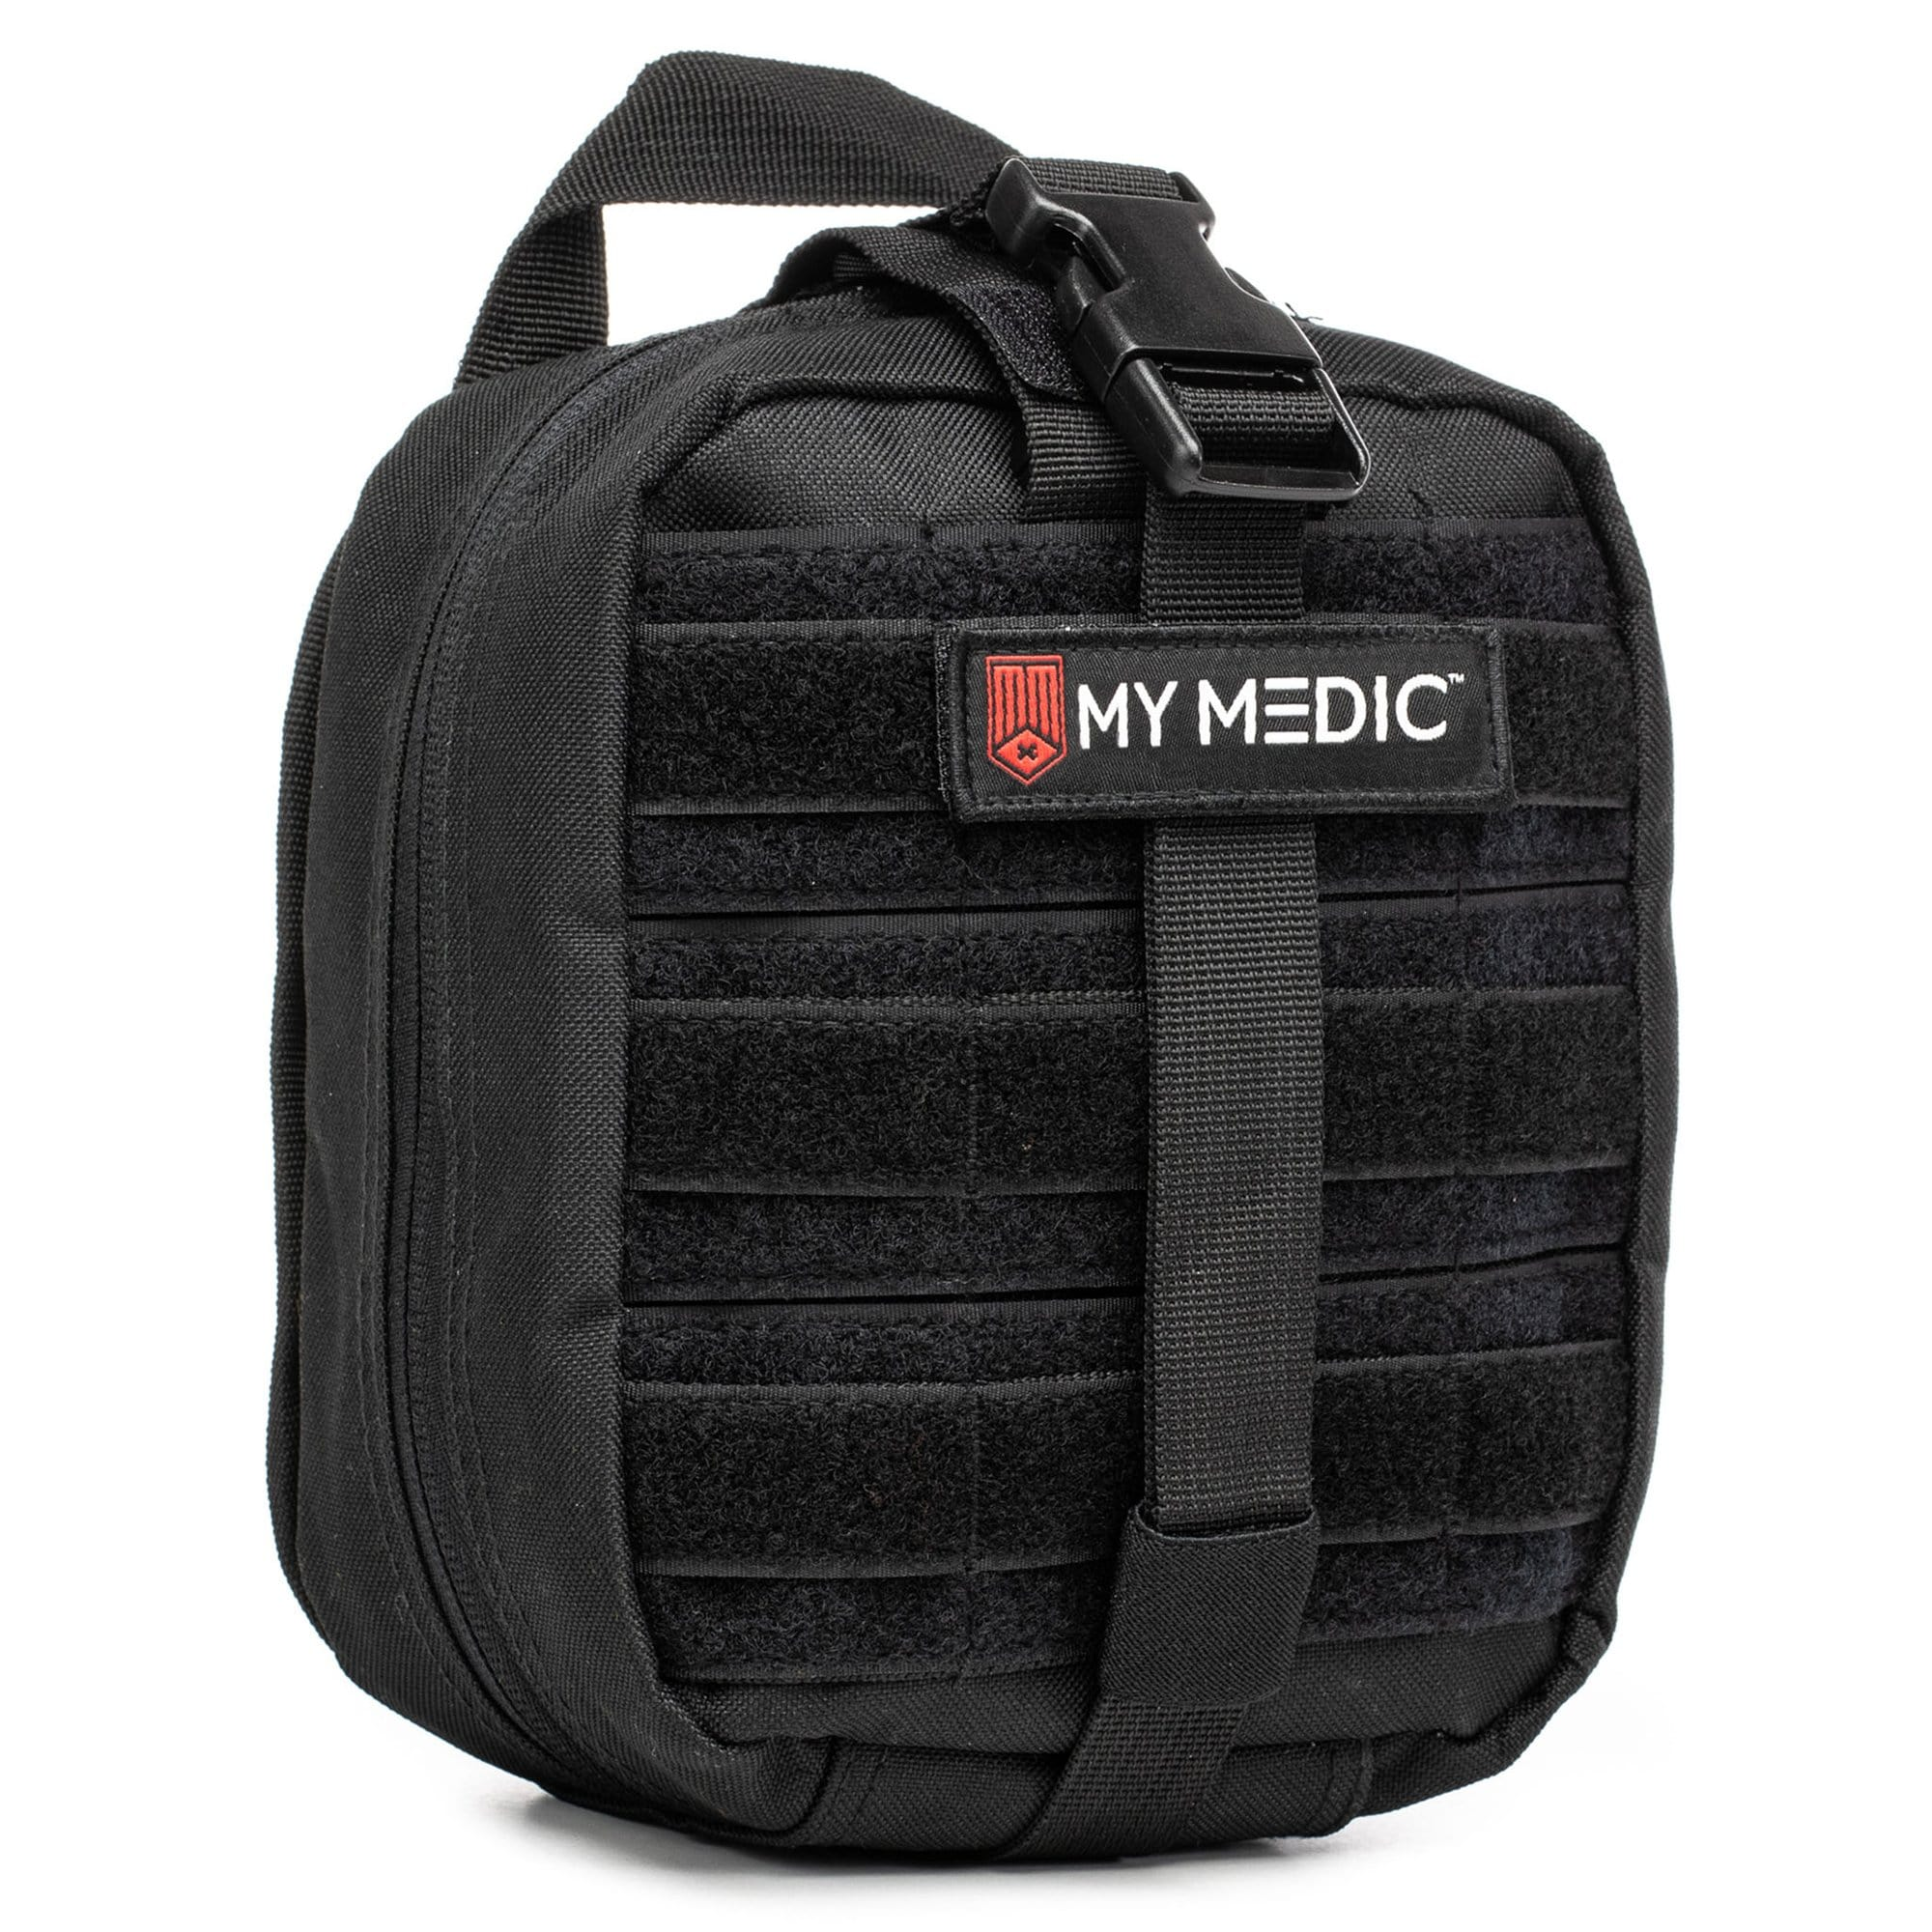 MyFAK: Advanced Individual First Aid Kit [IFAK] by MyMedic (color: BLACK)